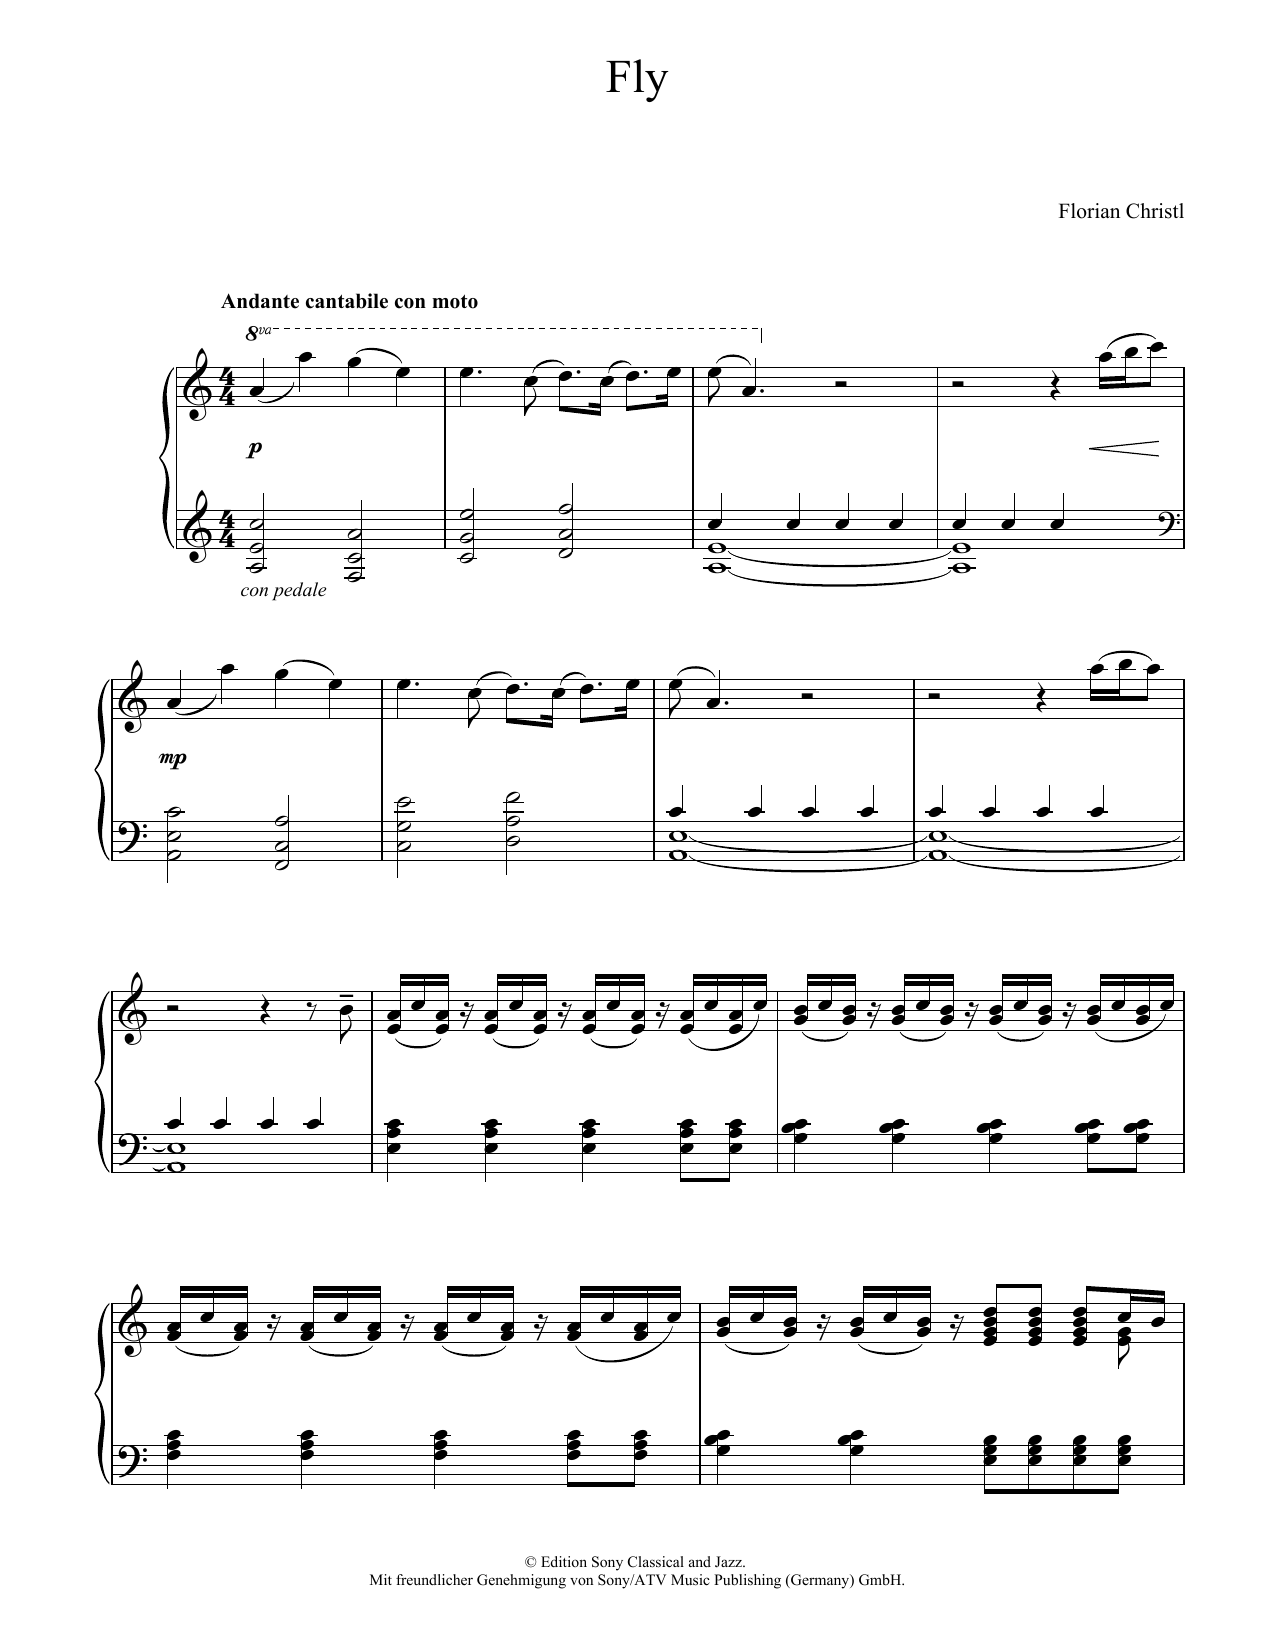 Florian Christl Fly sheet music notes and chords